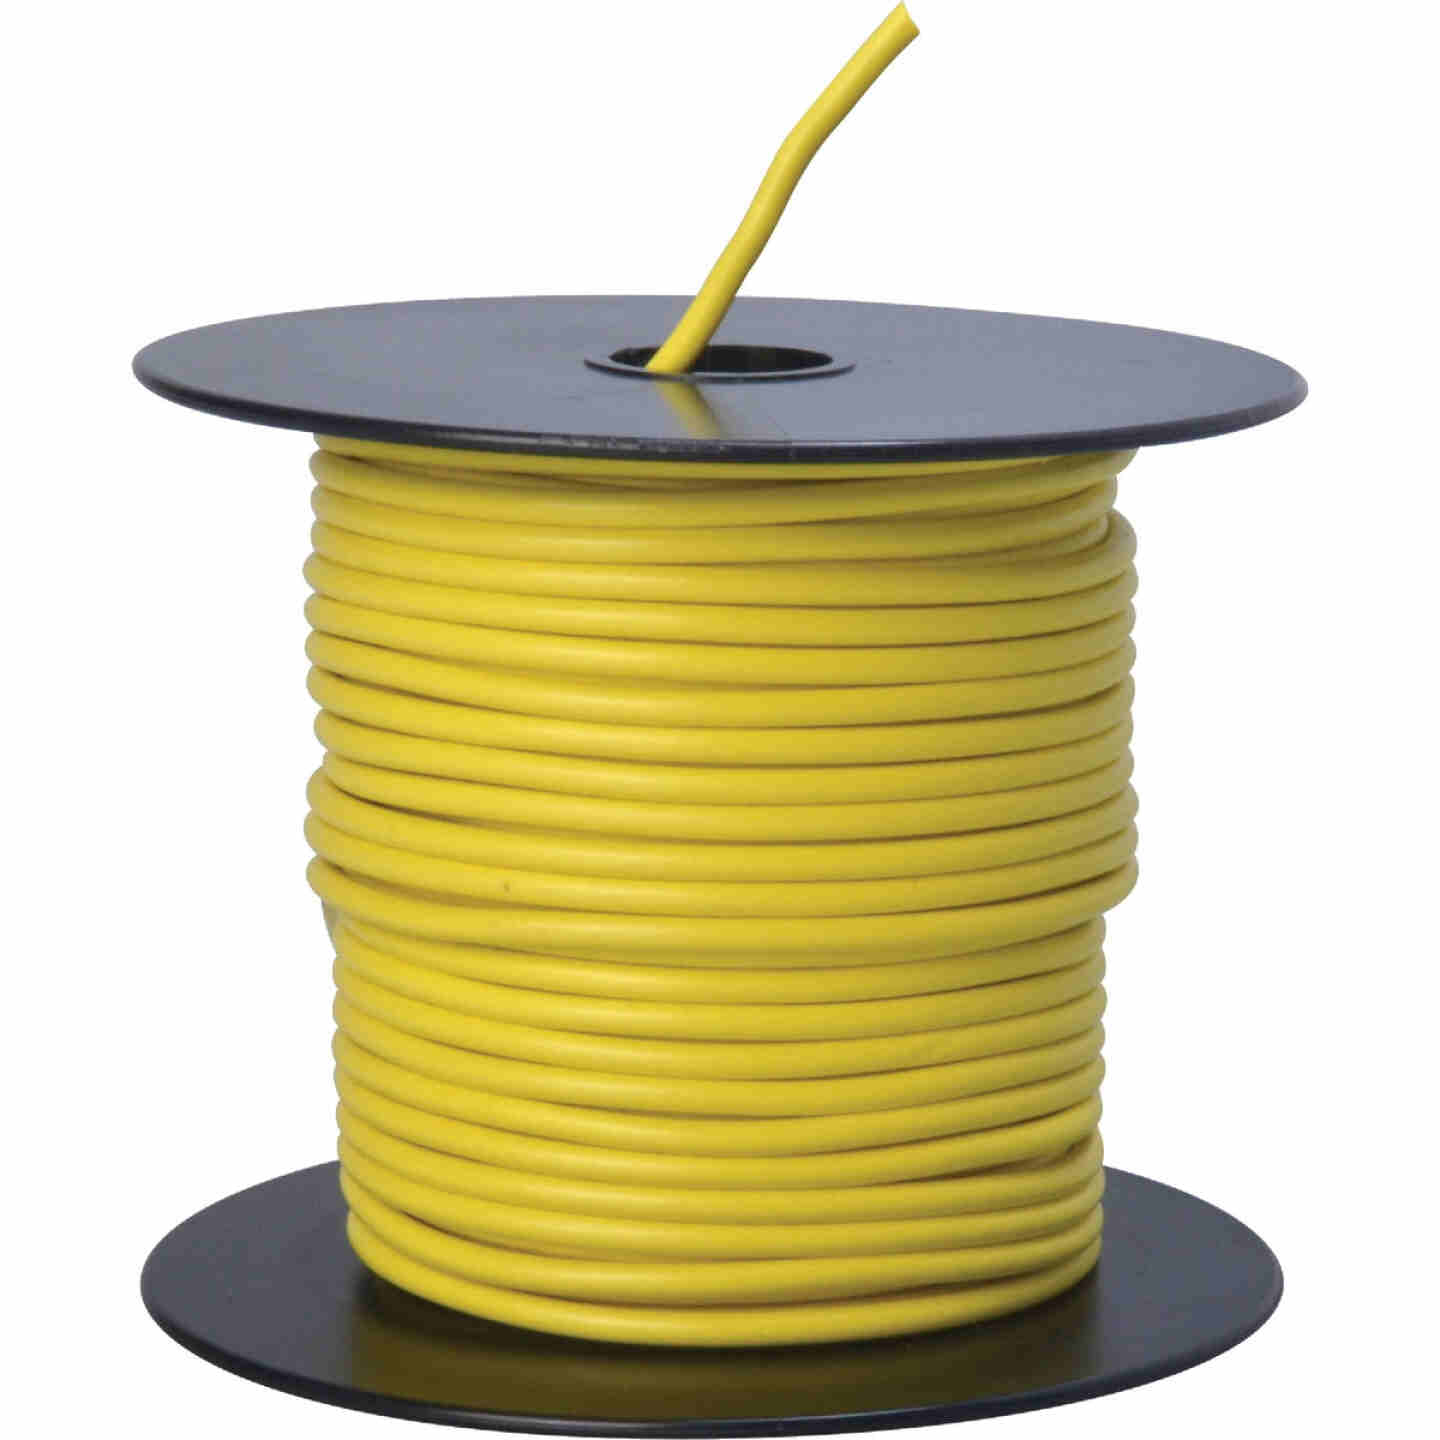 ROAD POWER 100 Ft. 14 Ga. PVC-Coated Primary Wire, Yellow Image 1